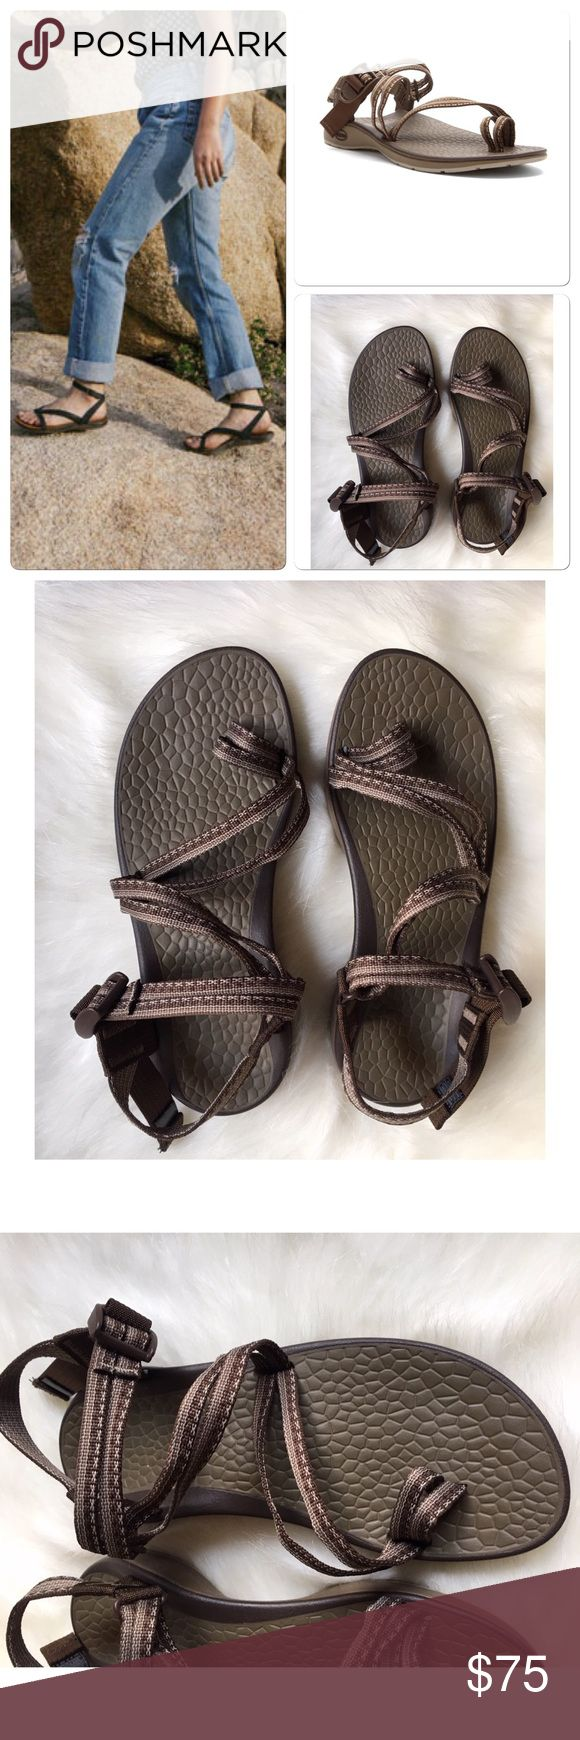 1 HR SALE⏳Chaco Fantasia Sandals in Stitch Brown These are absolutely perfect and look like they've been tried on inside only. They show NO wear at all. Size 7. No trades. Chaco Shoes Sandals